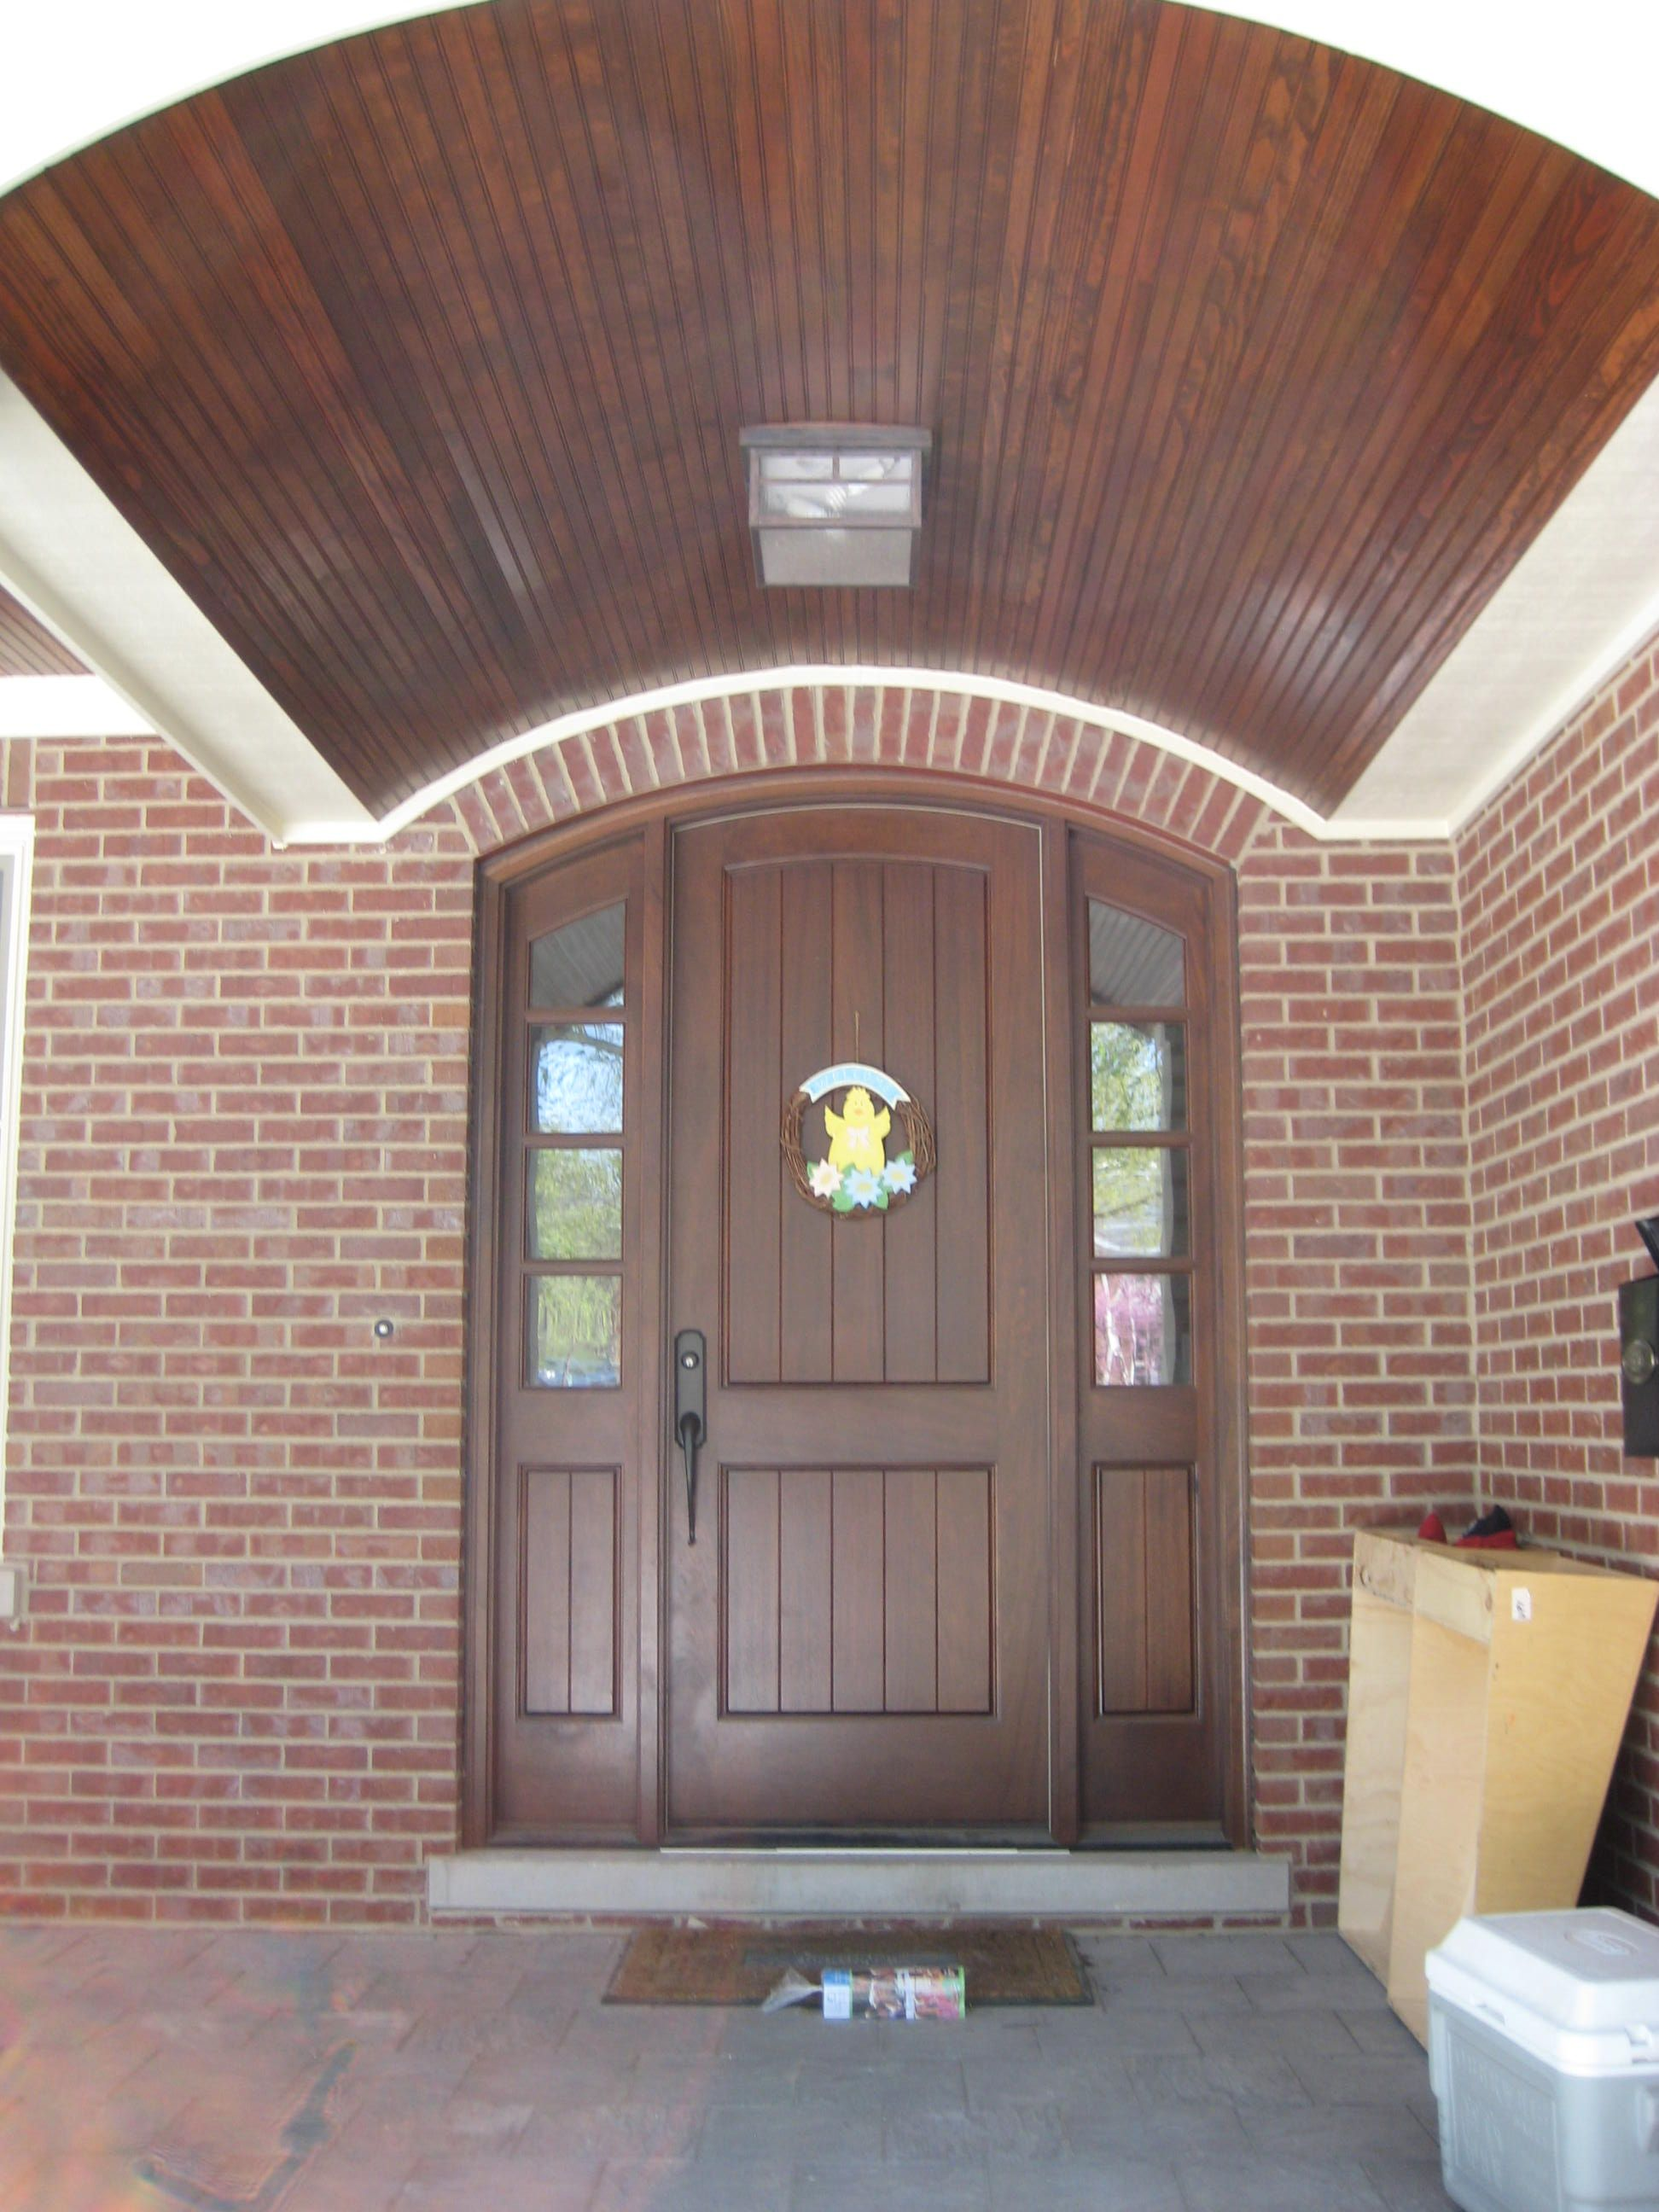 Fiberglass doors Therma tru Match stains notice wood above